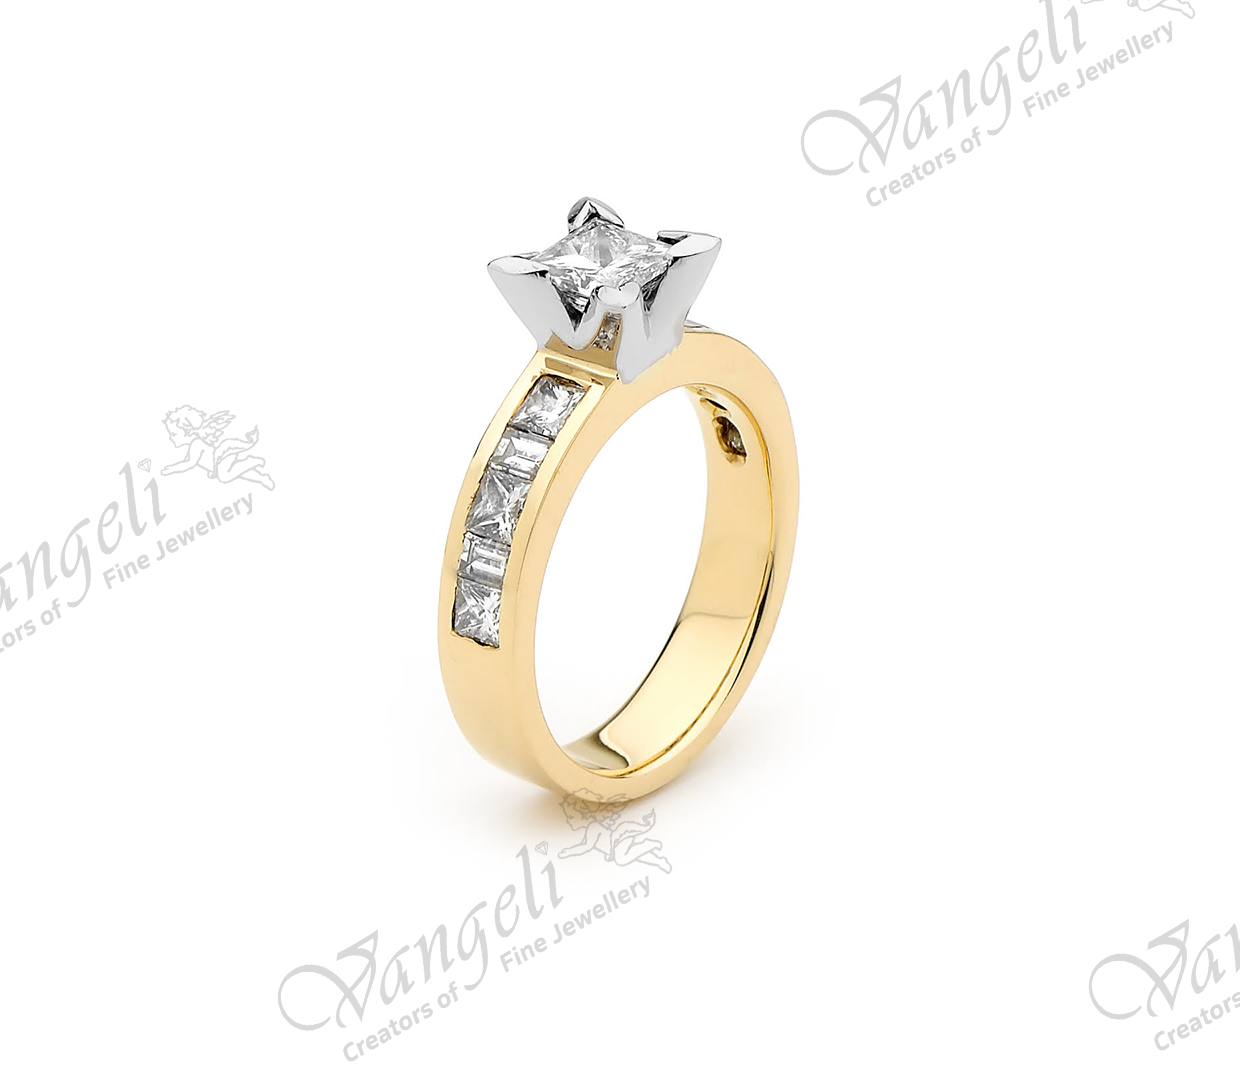 18ct white and yellow gold hand-made diamond ring